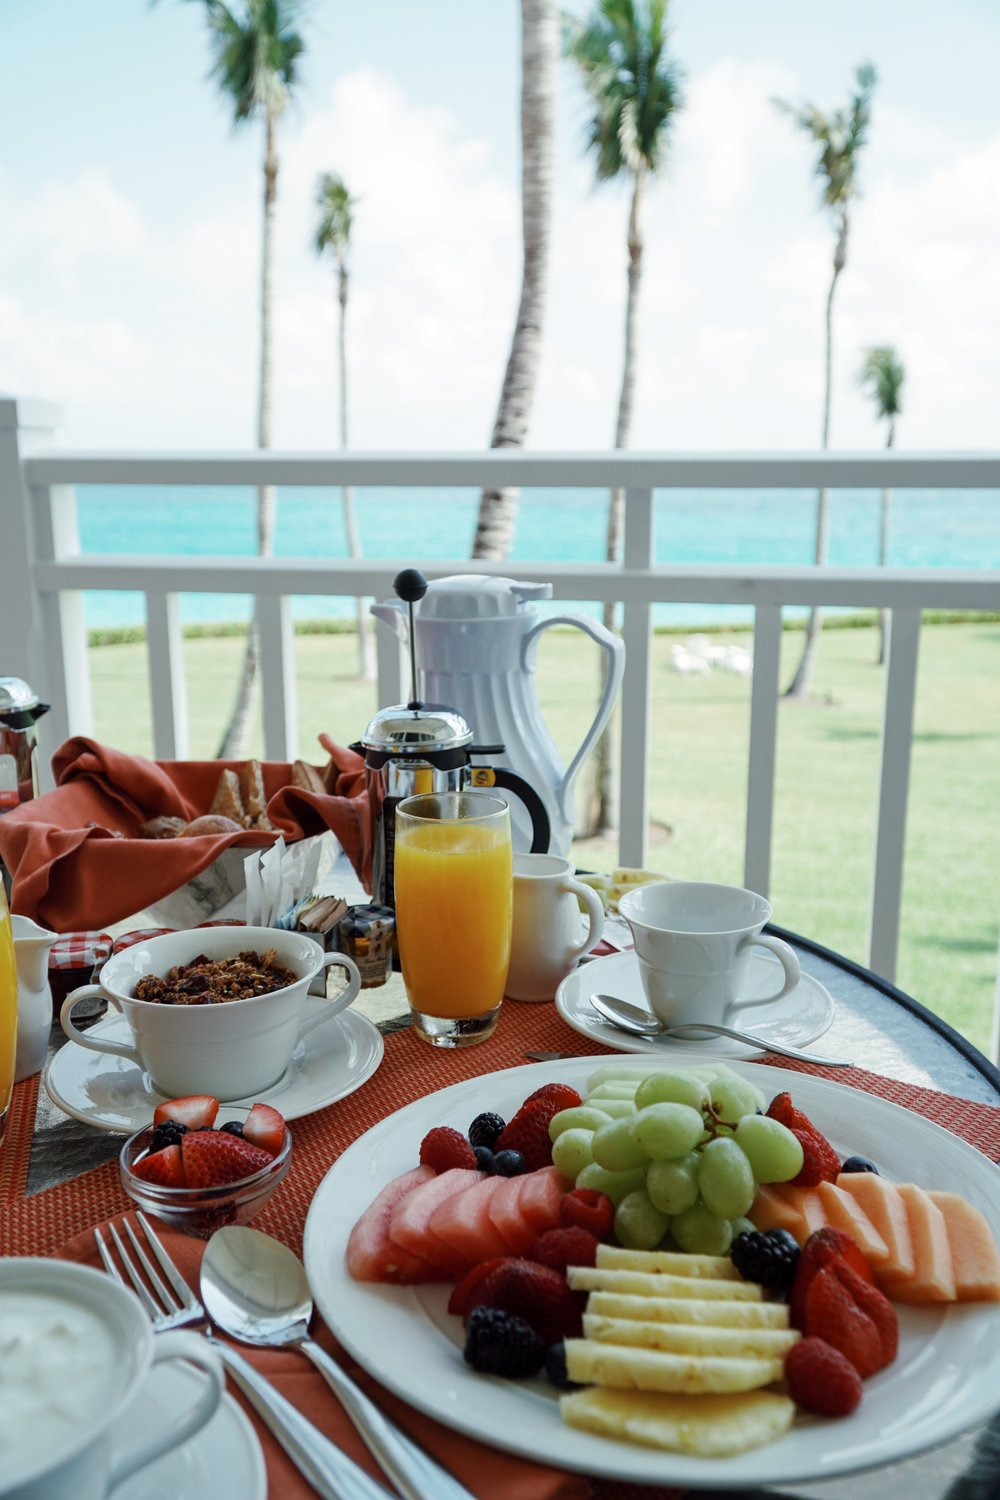 Julia Friedman enjoys a healthy breakfast with an ocean view at the One&Only Ocean Club in the Bahamas.